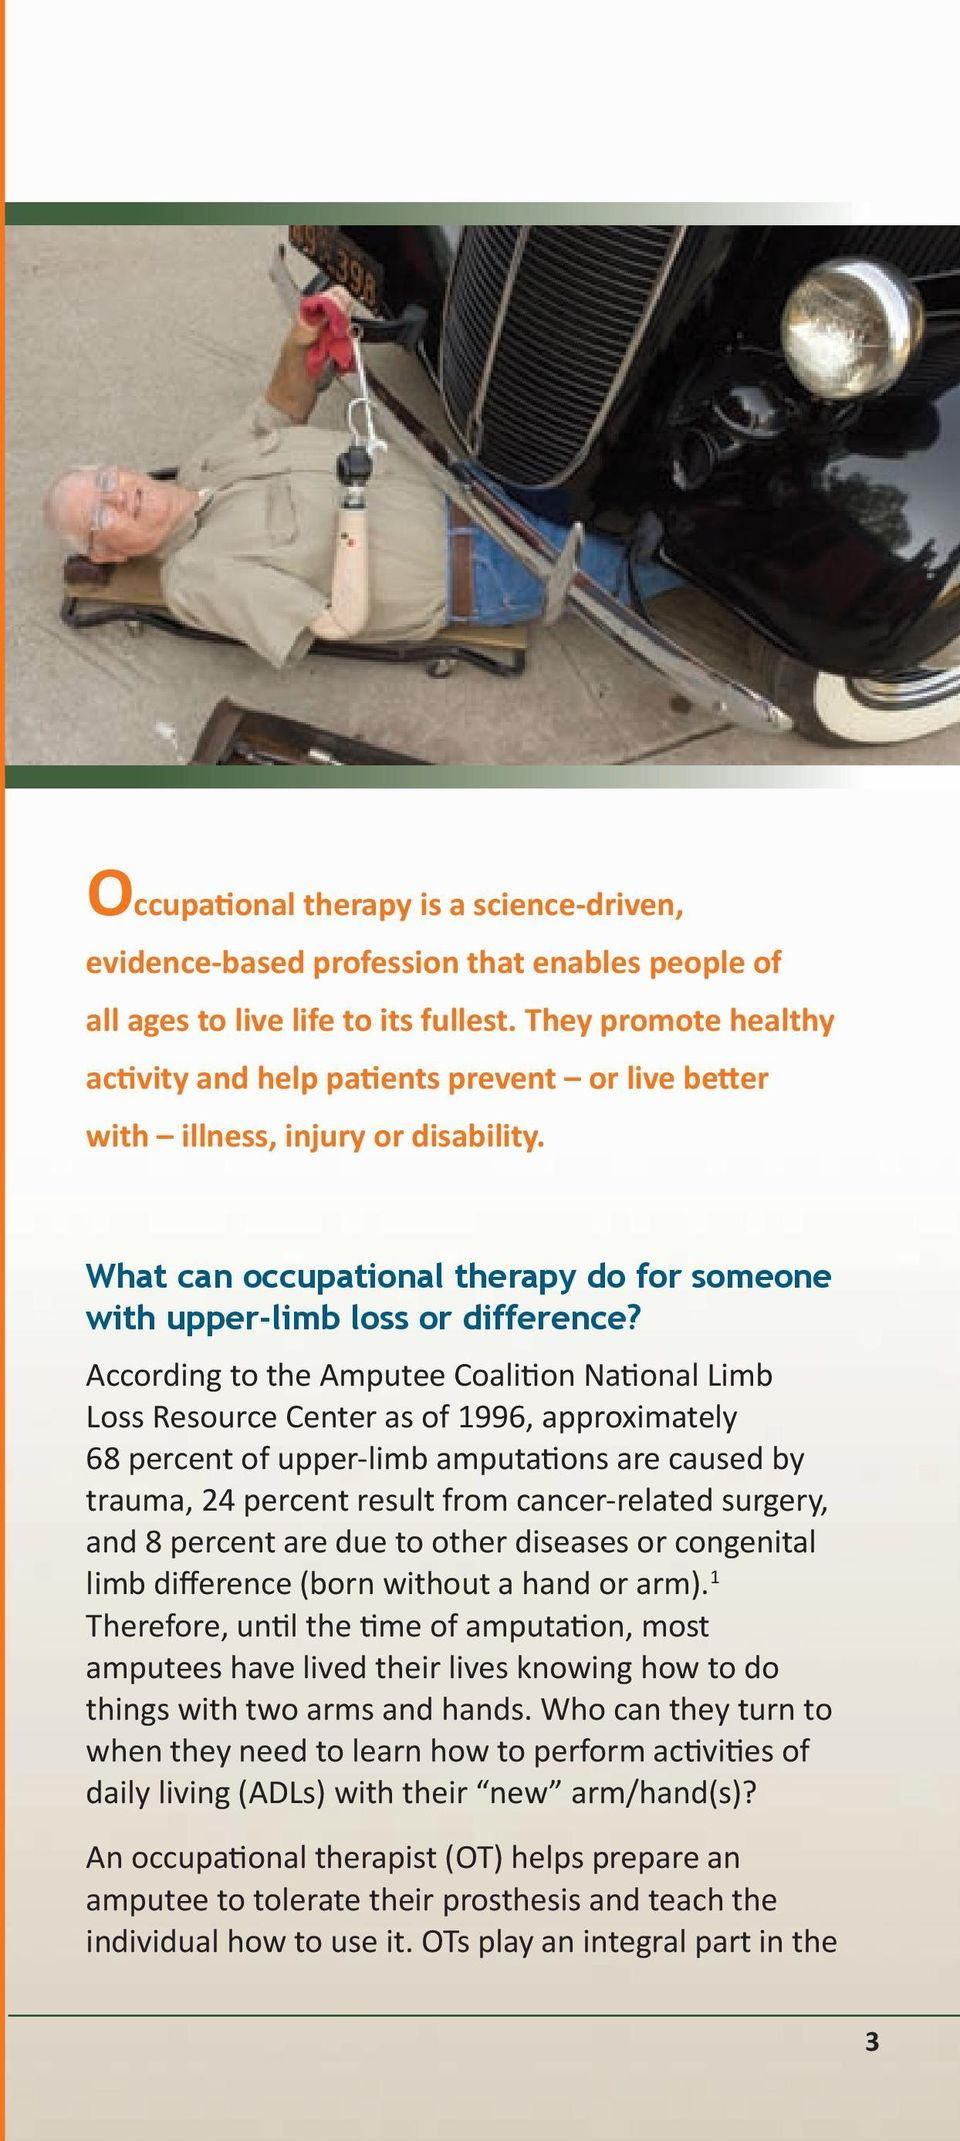 According to the Amputee Coalition National Limb Loss Resource Center as of 1996, approximately 68 percent of upper-limb amputations are caused by trauma, 24 percent result from cancer-related